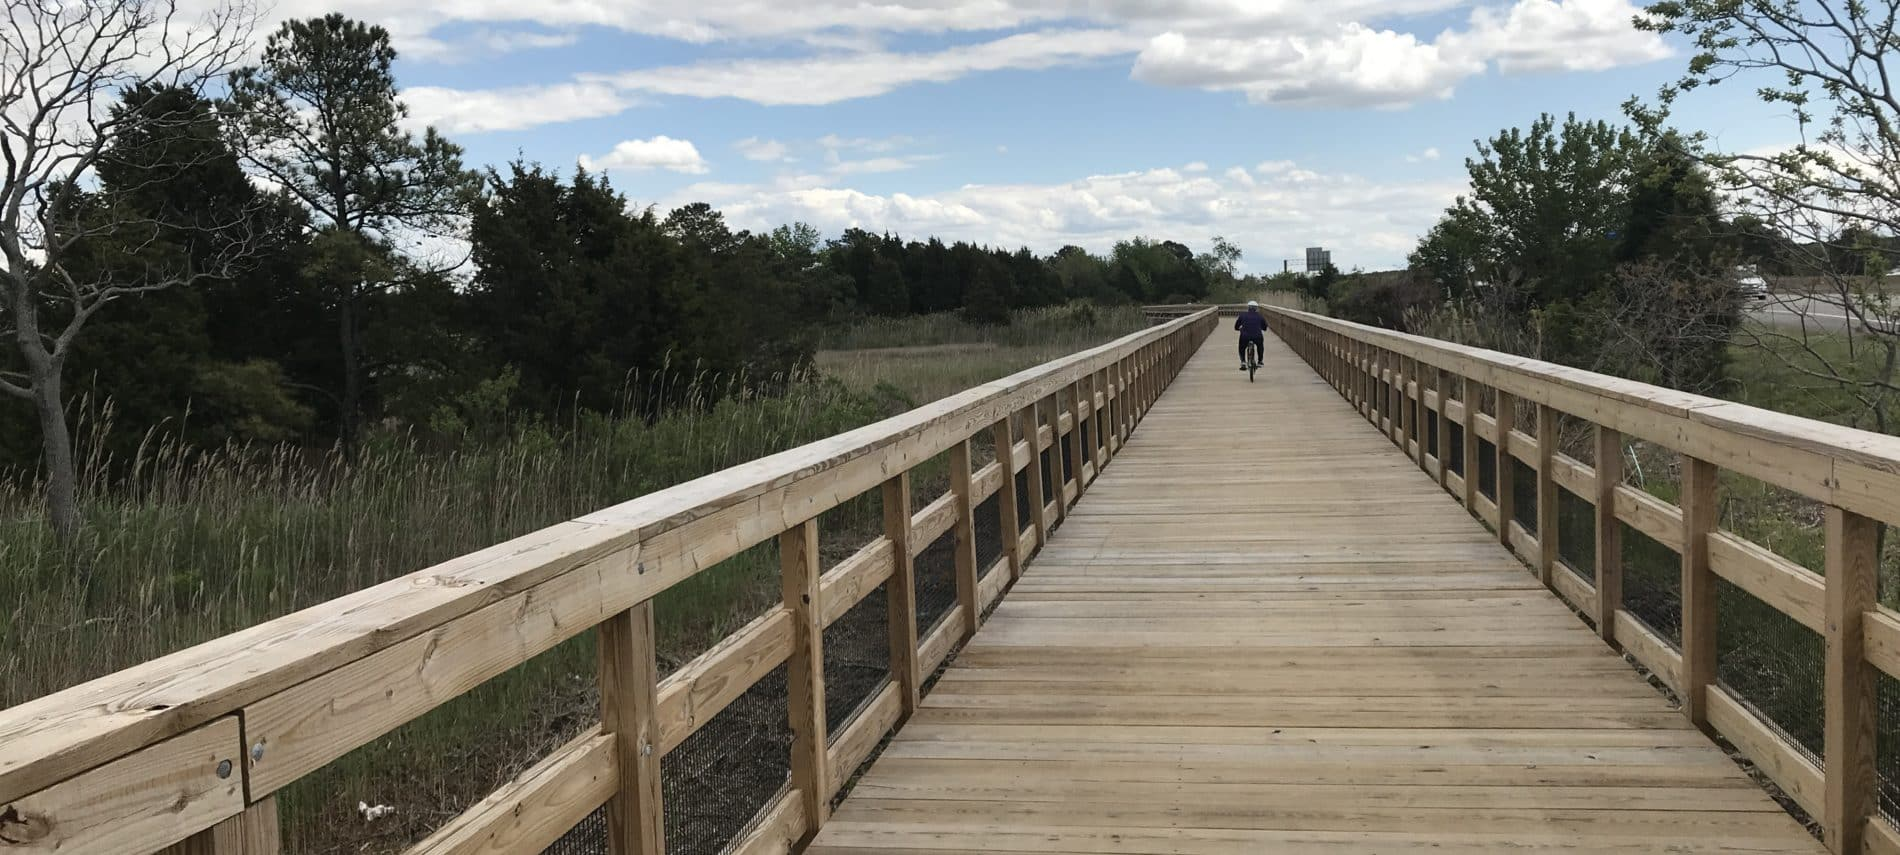 boardwalk over marsh